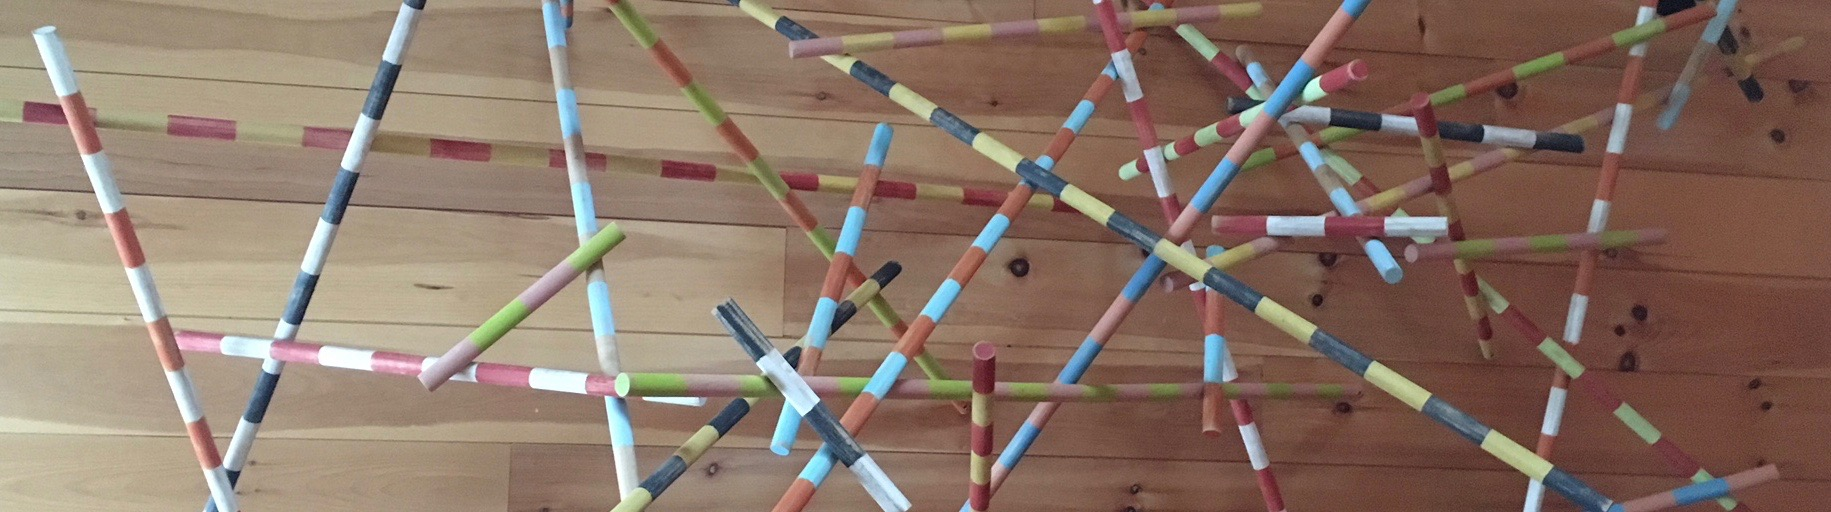 Detail of 'banded poles' by paul oberst. acrylic on wooden dowels manufactured at the mill. this sculpture is on display in the kitchen of the mill school.